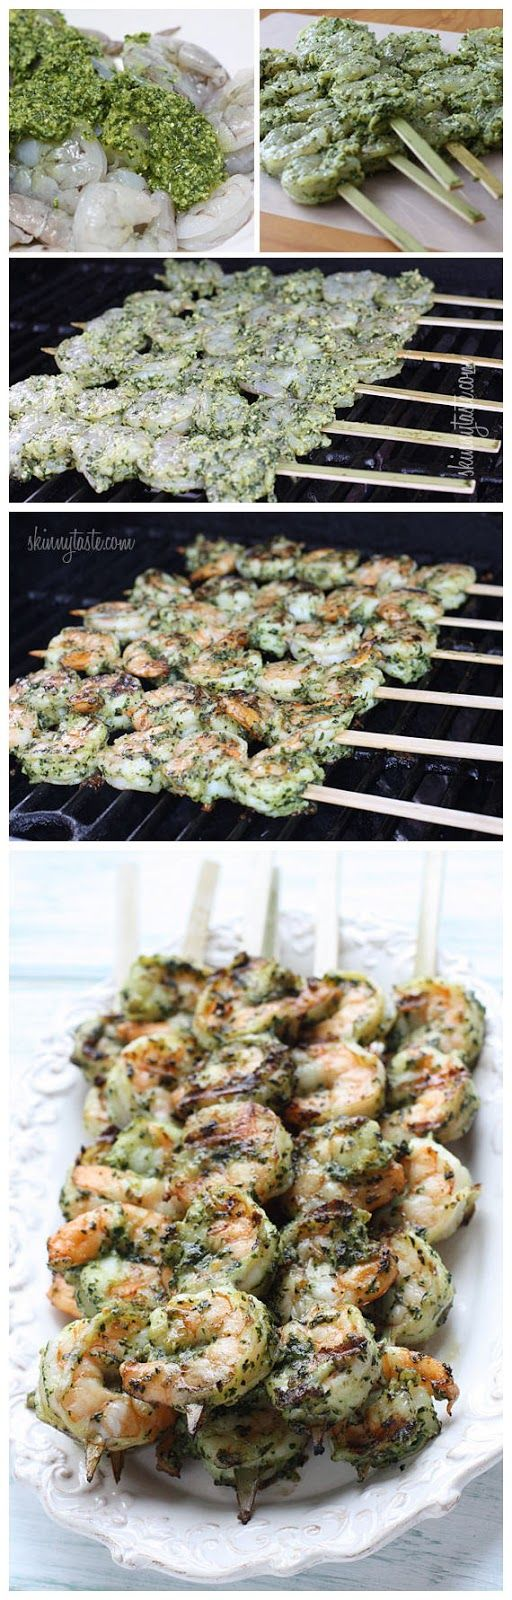 ***** Grilled Pesto Shrimp Skewers.  Make your own Pesto it's so easy and tastes so good!  2013